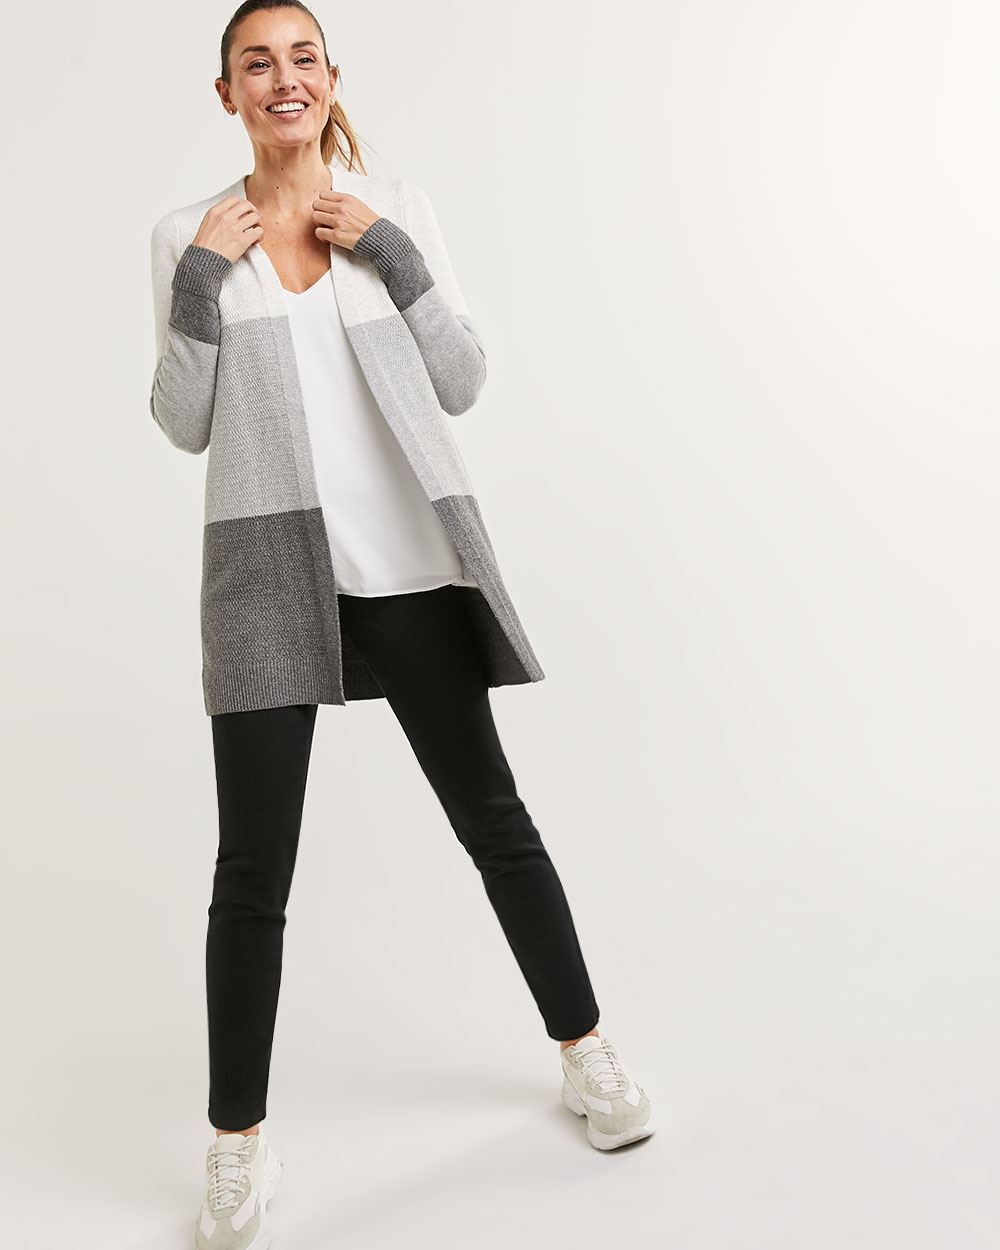 Long Sleeve Colorblock Cardigan with Pockets